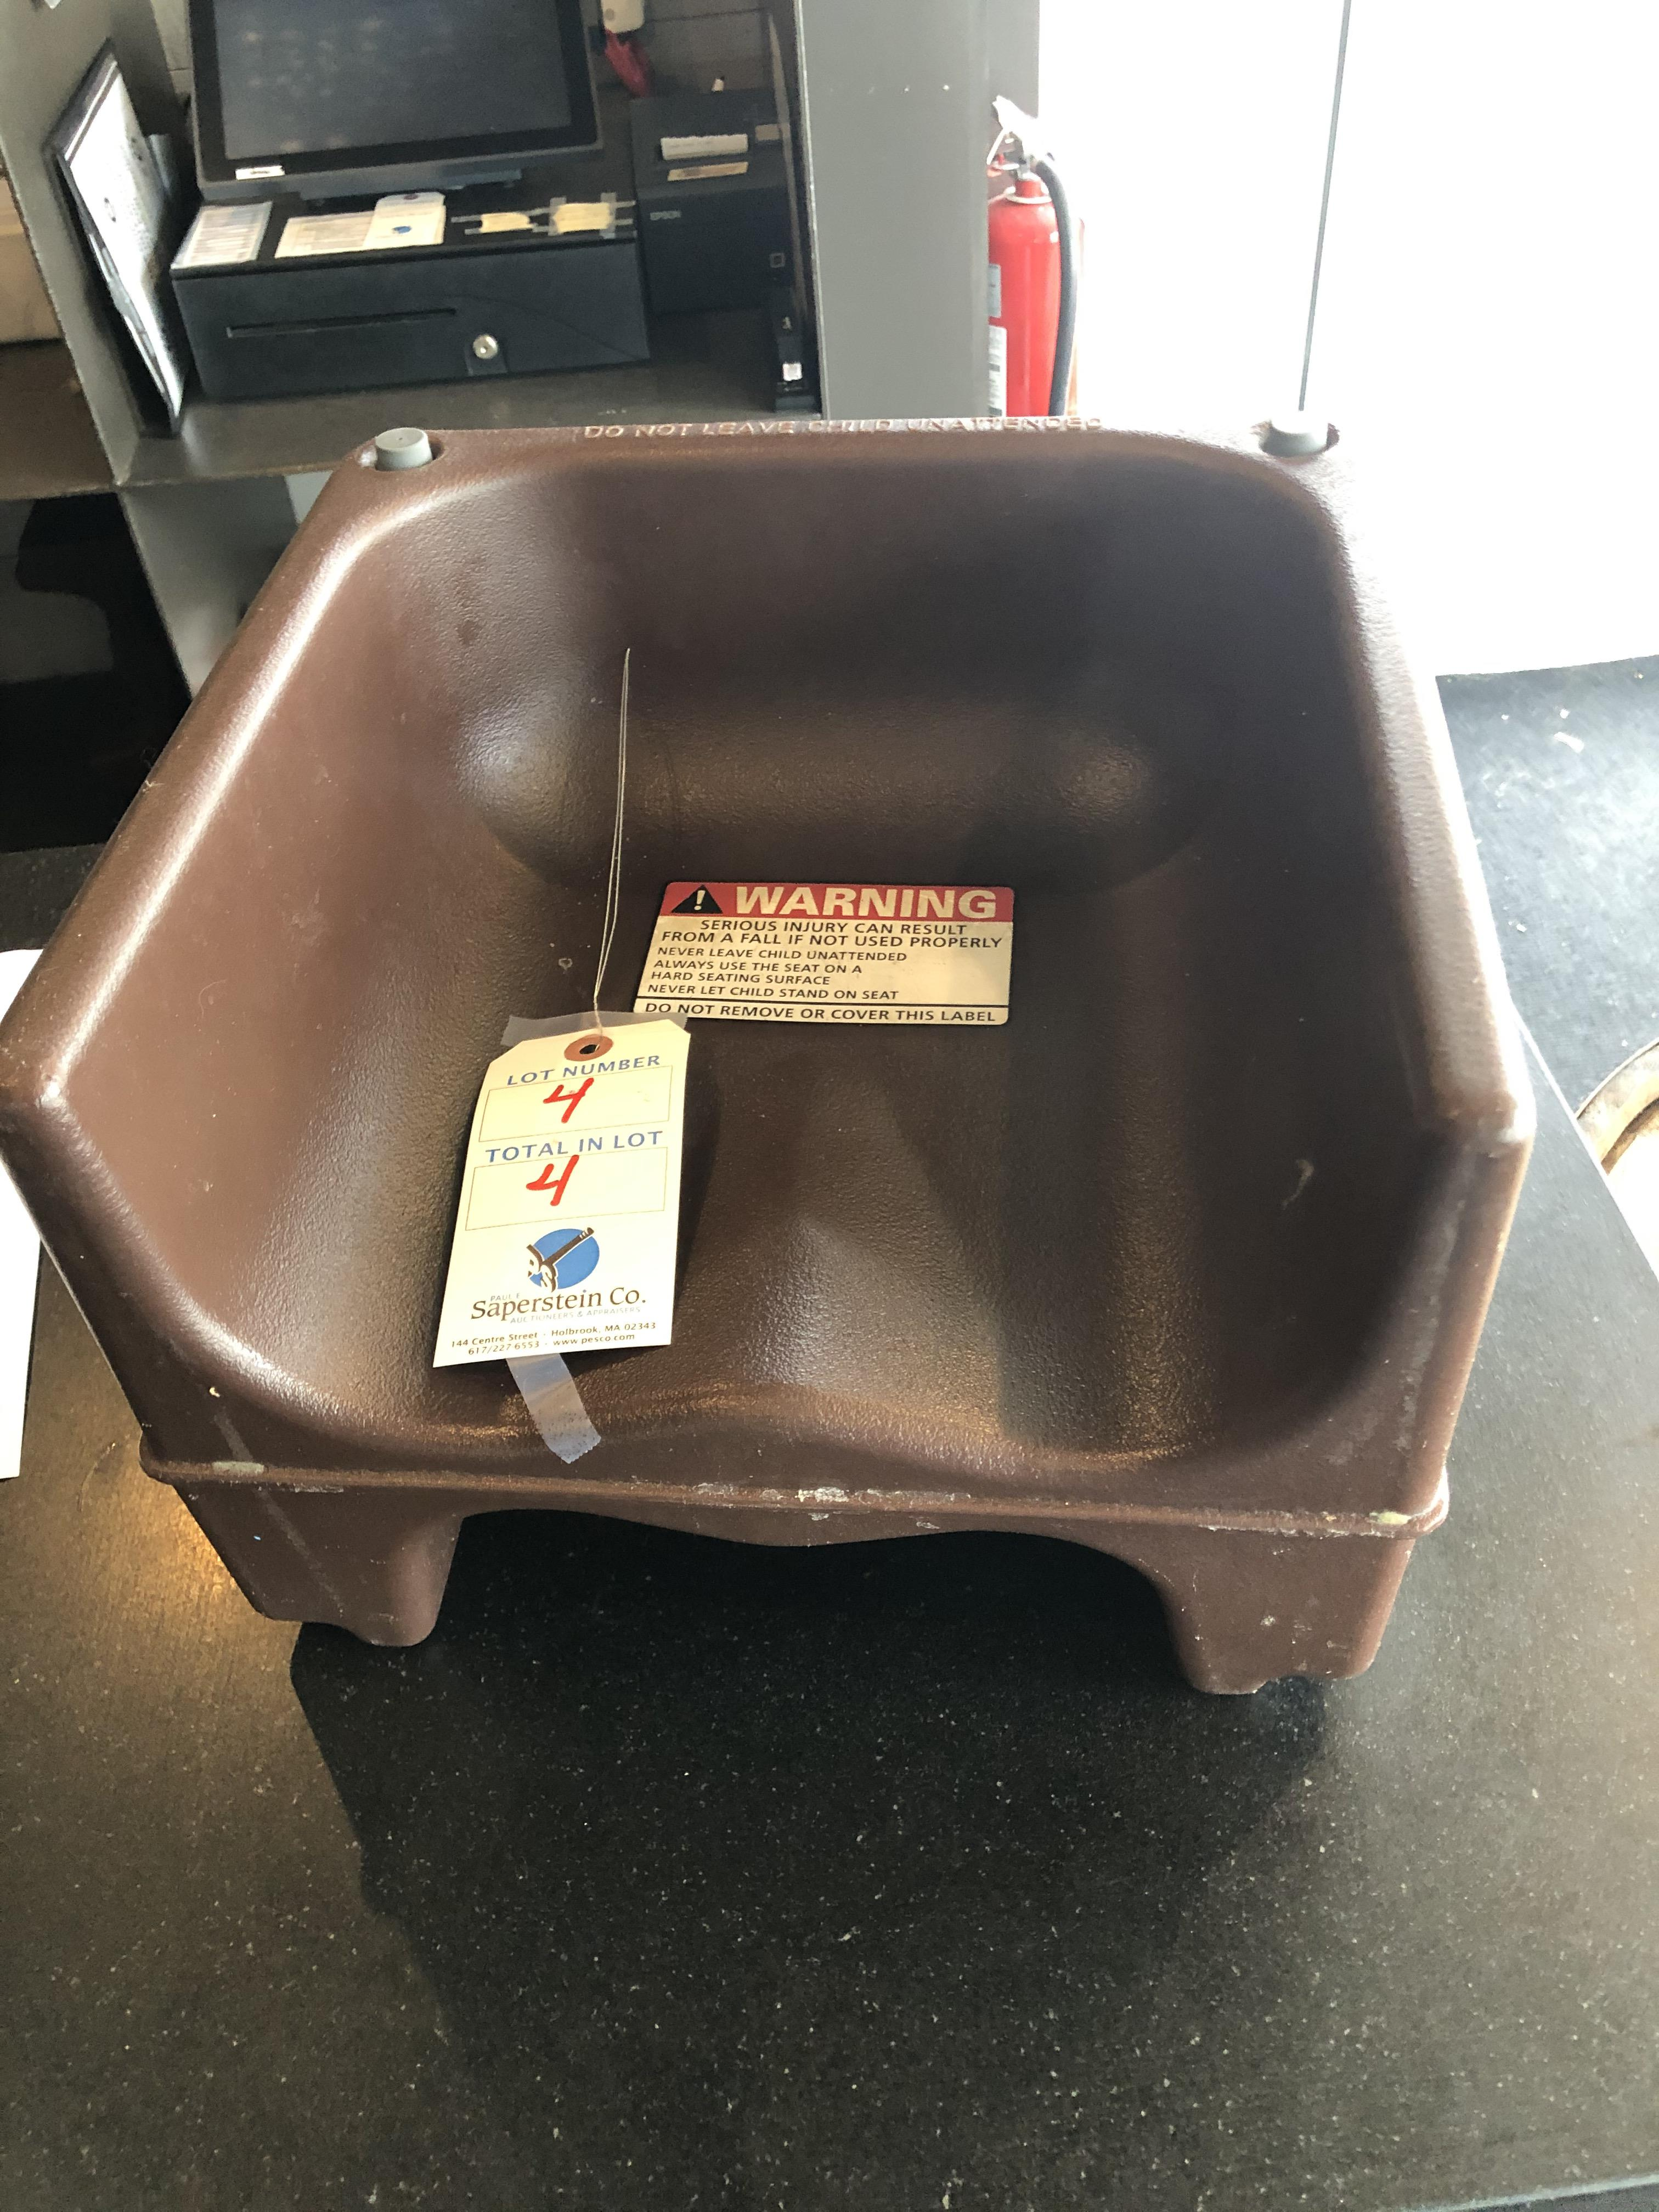 (4) Booster Seats